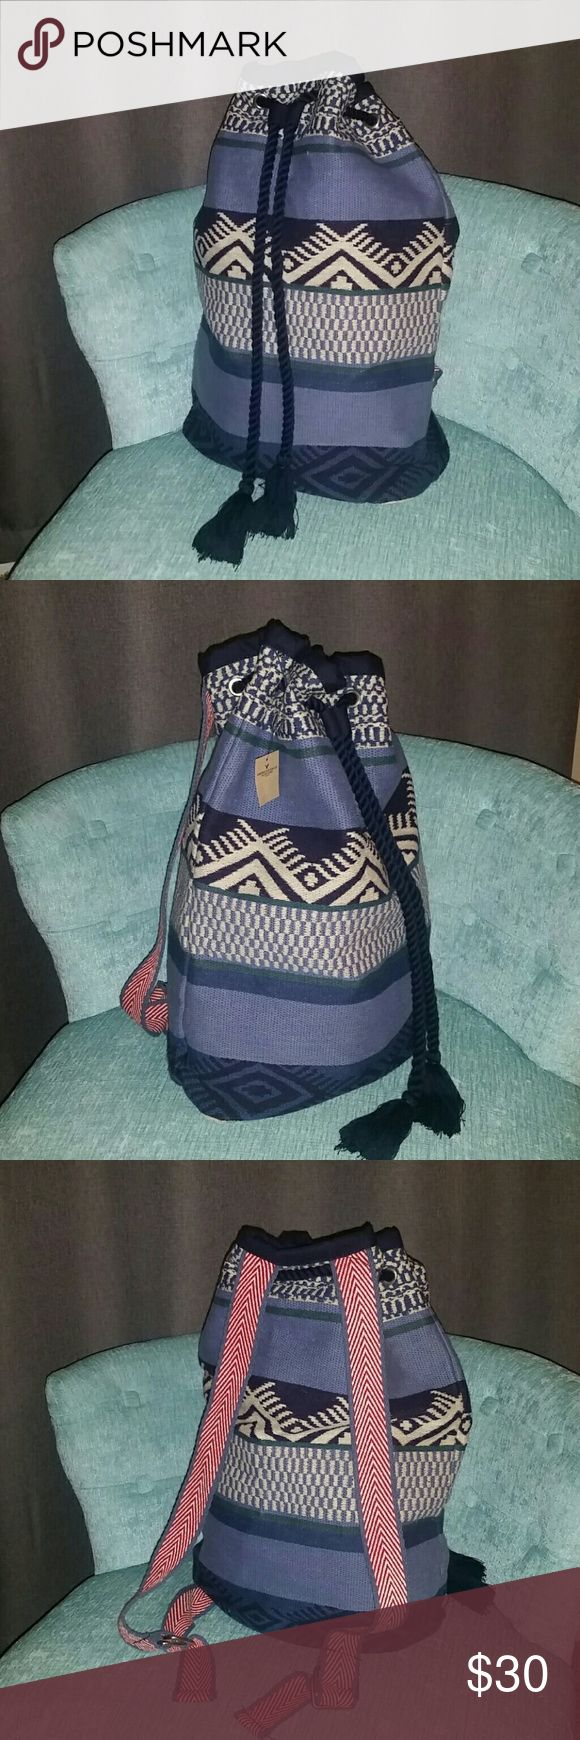 AMERICAN EAGLE BOHO TAPESTRY BOOK BAG KNAPSACK American Eagle tribal print boho knapsack style book bag. This is made of a thick tapestry or blanket like material. The material is done in shades of blue and ivory with a few green stripes. The straps are a coordinating red and ivory with blue trim and they are adjustable. It has navy blue soft rope pull closure. Inside is a solid navy cotton blend material with two slip pockets on the back wall.  19 x 15 x 5 American Eagle Outfitters Bags…